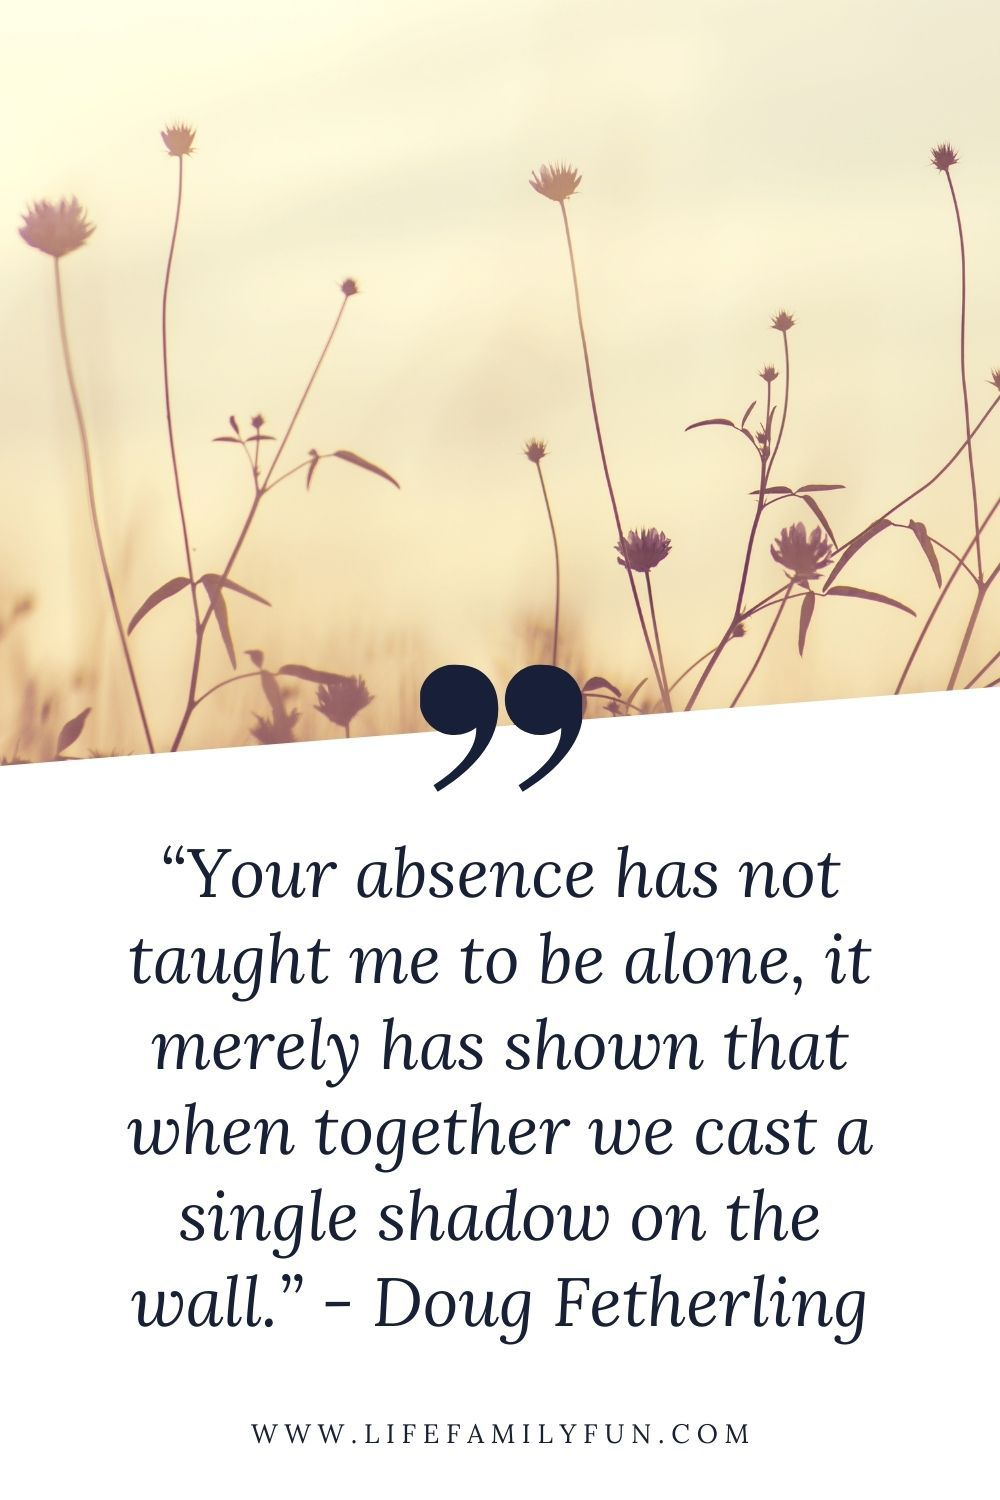 Marriage Quote by Doug Fetherling